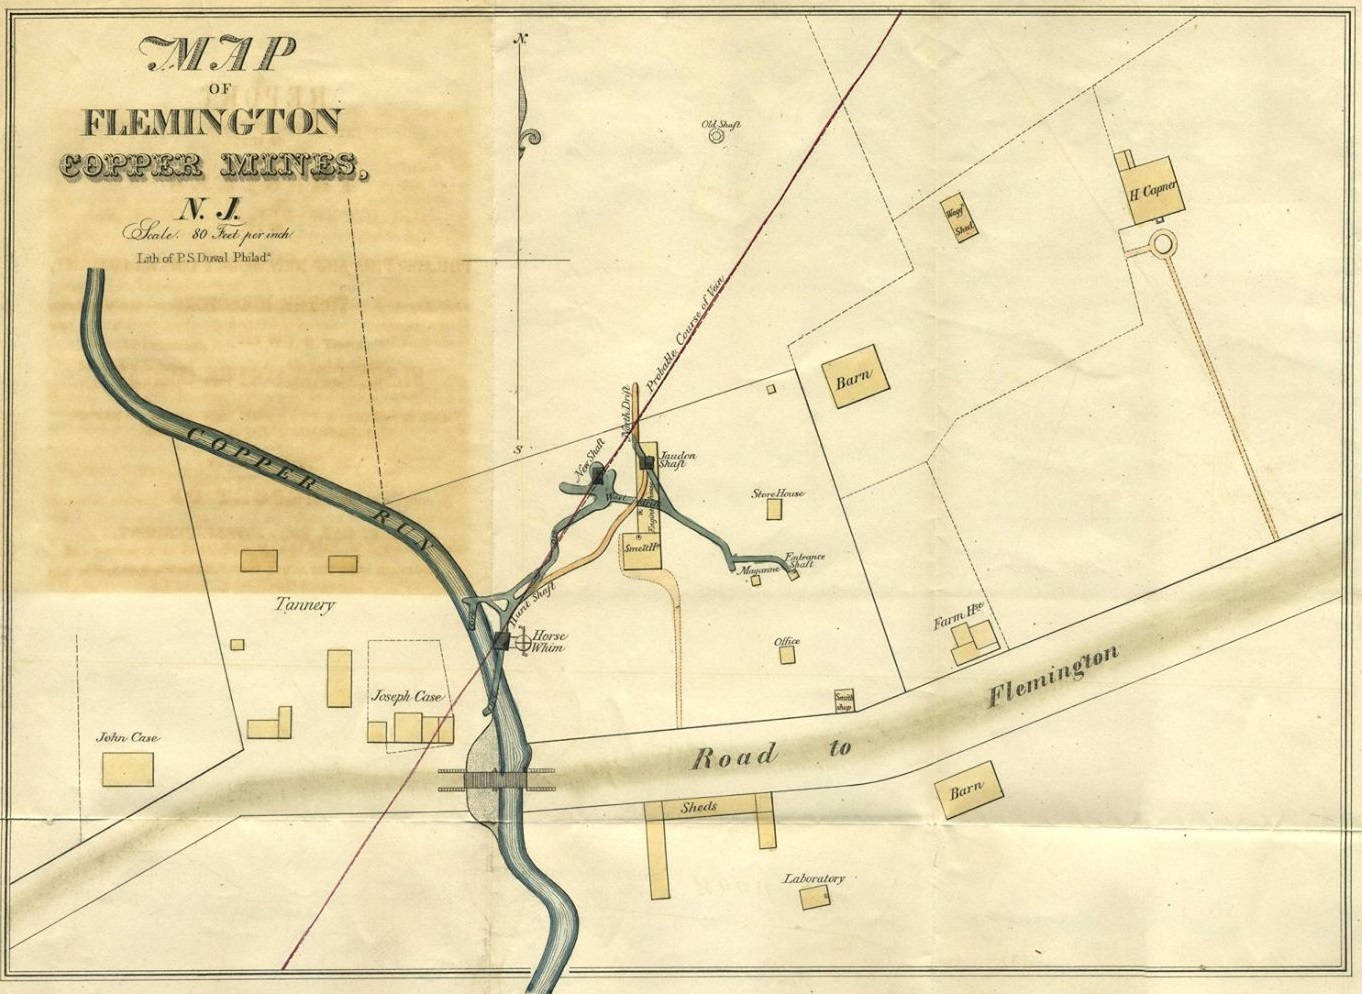 Map of Flemington Copper Mines